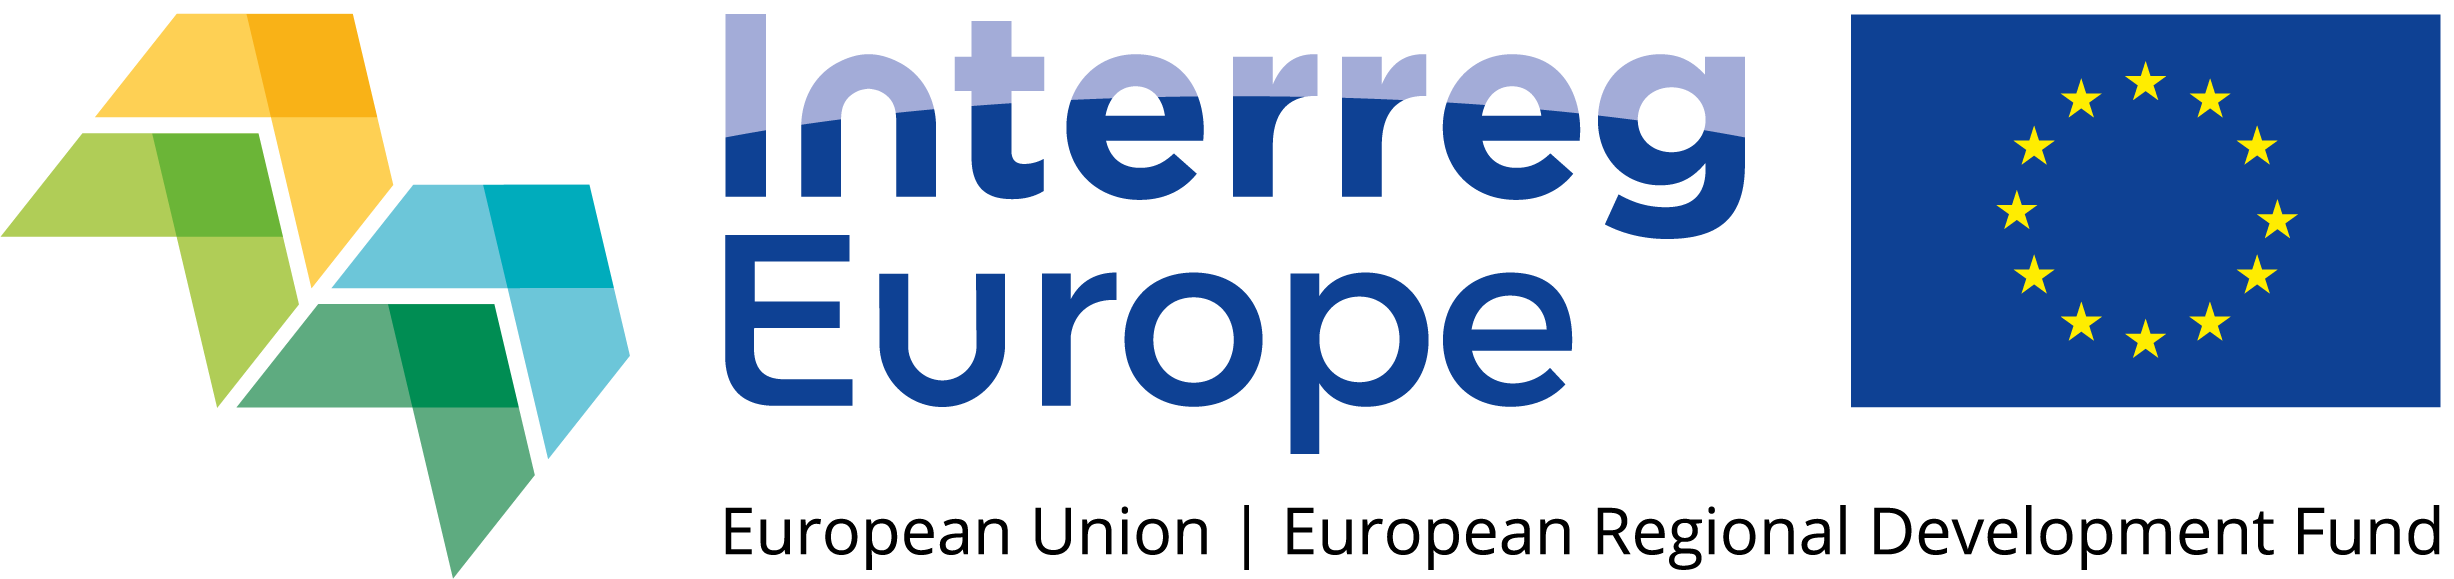 Interreg Europe logga